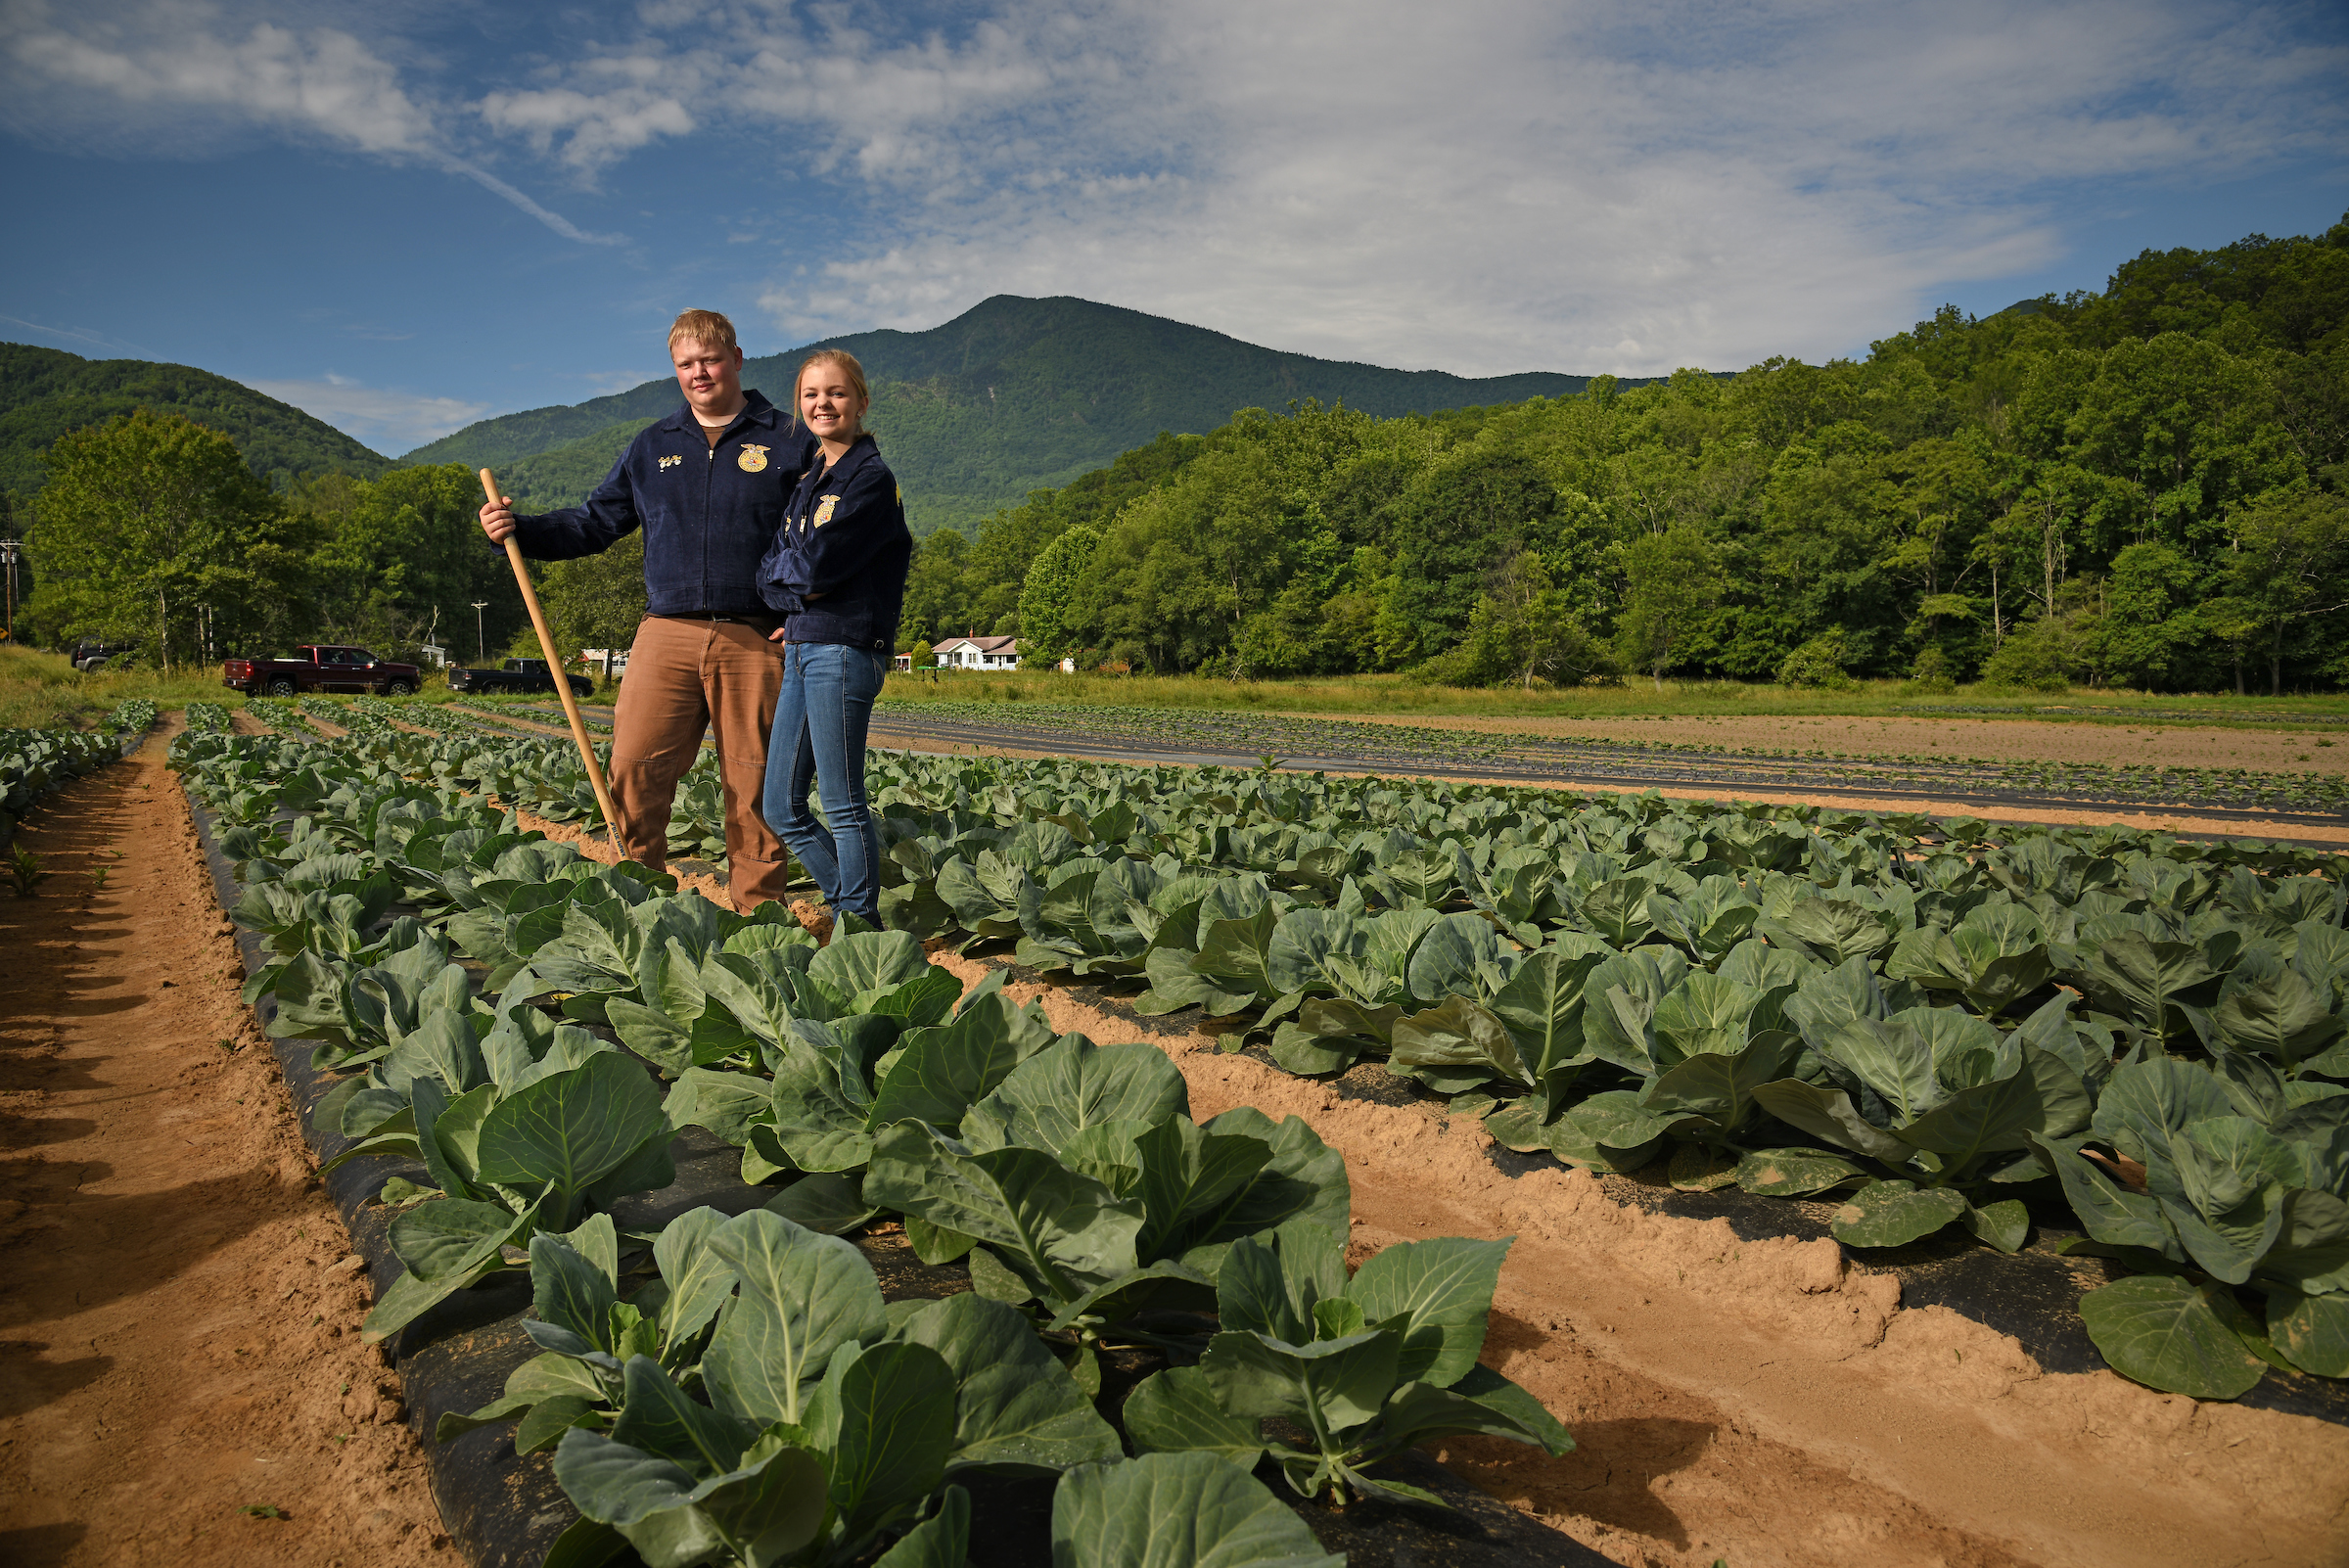 2 people standing in field with collards